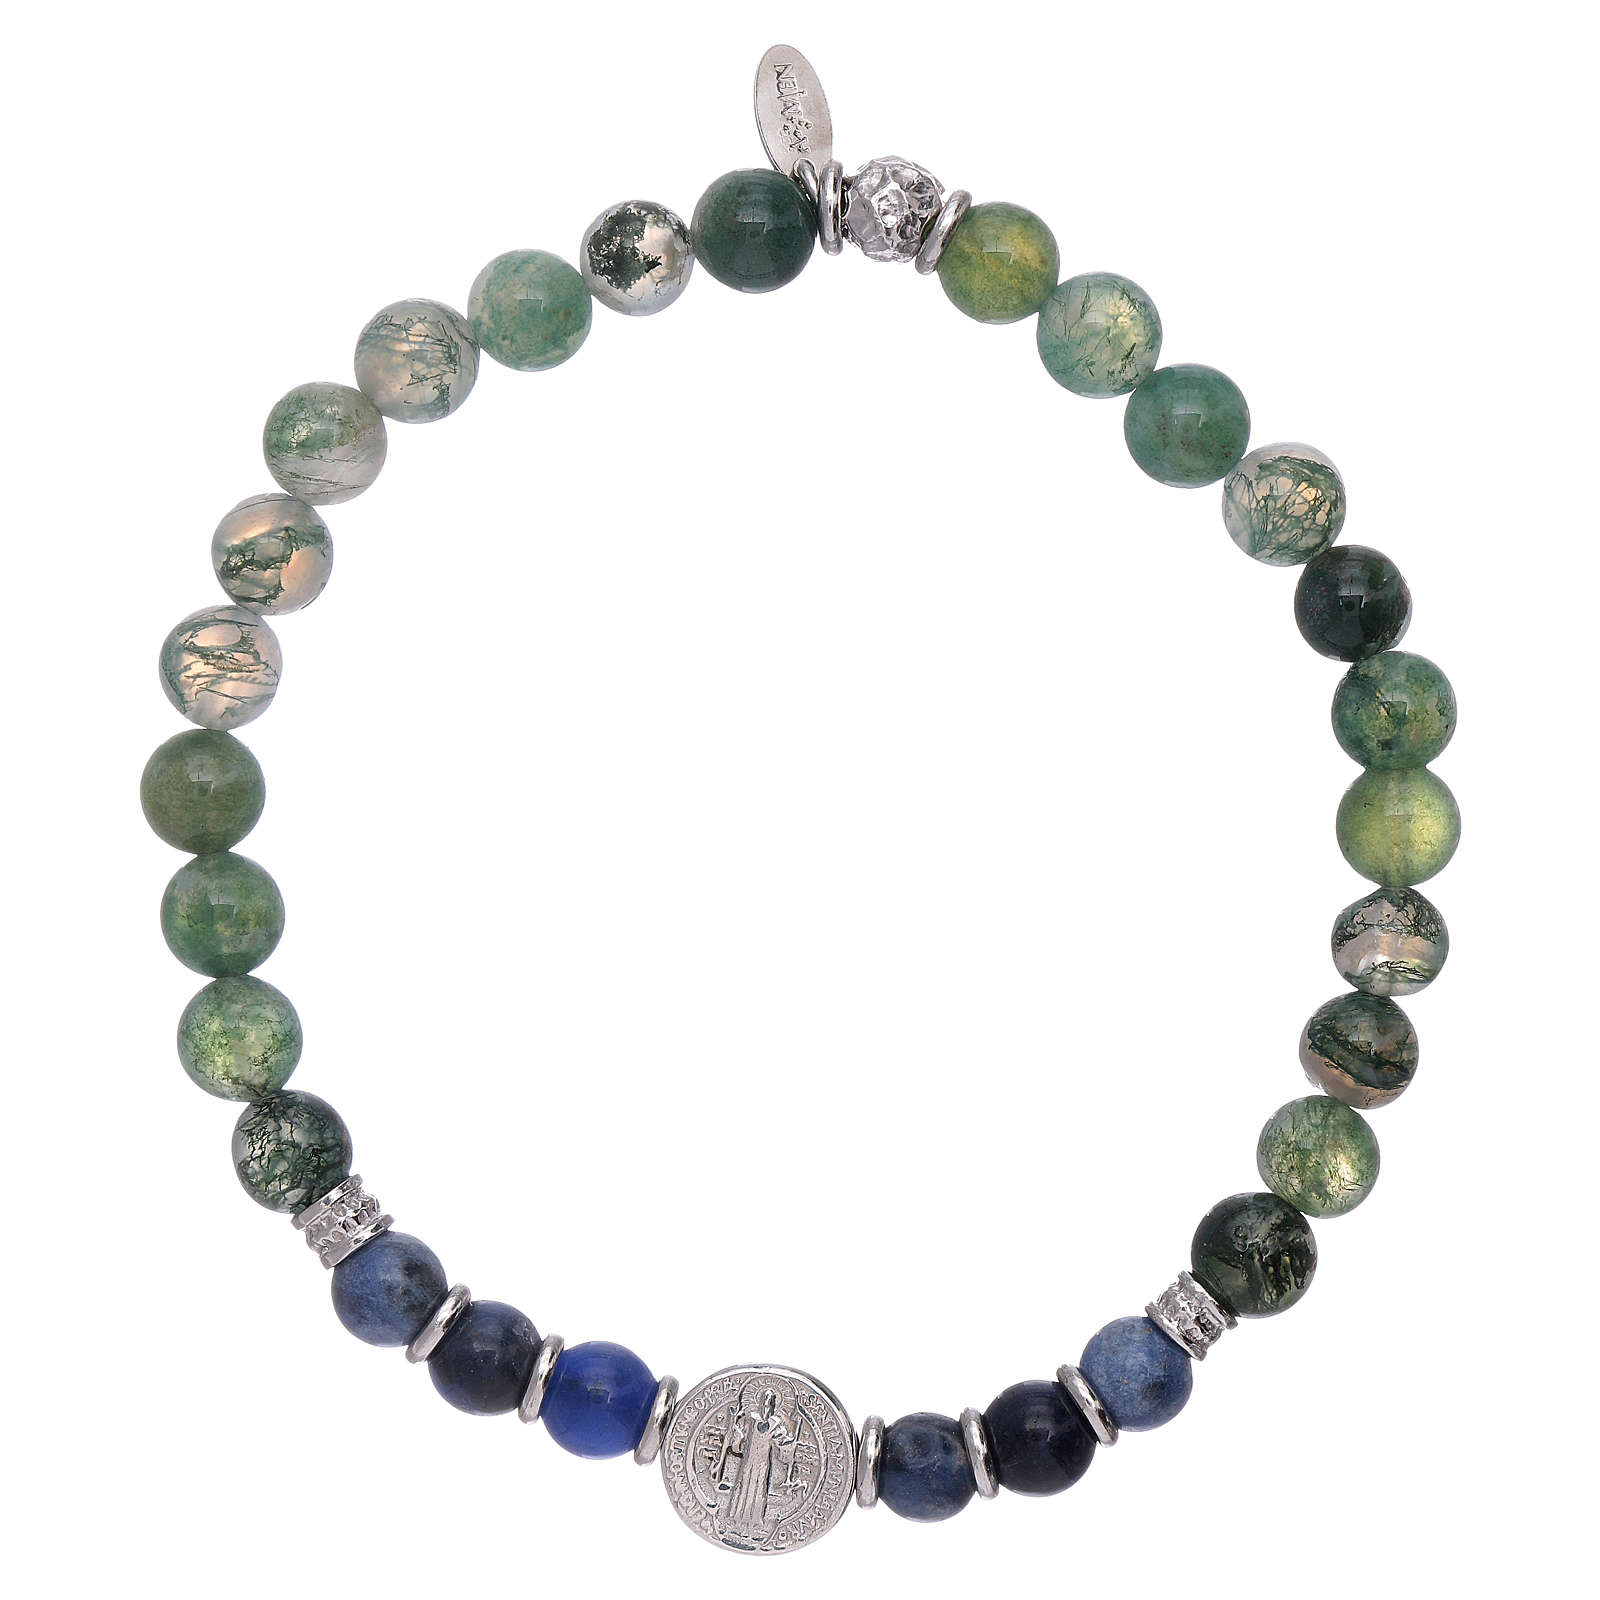 AMEN 925 sterling silver Saint Benedict bracelet with onyx beads for men 4